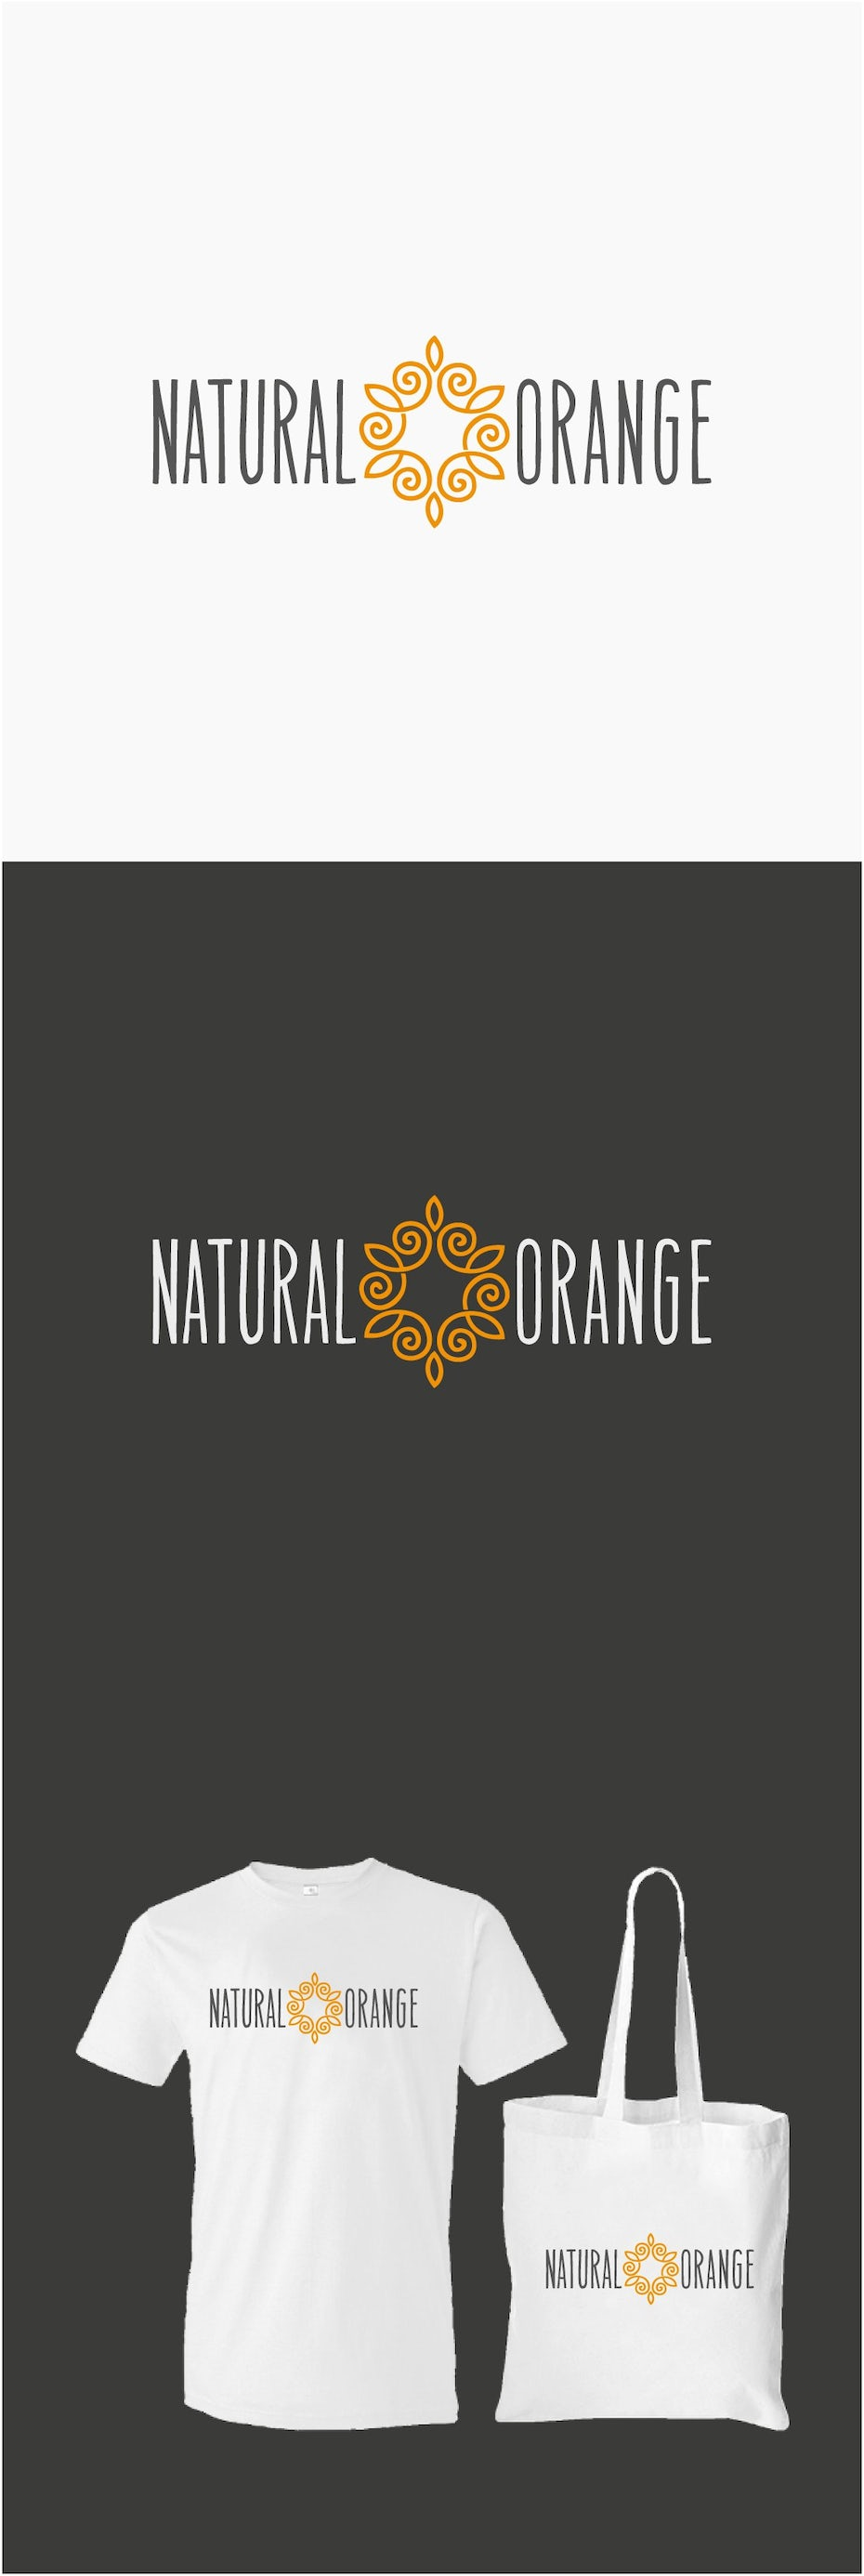 Natural Orange logo